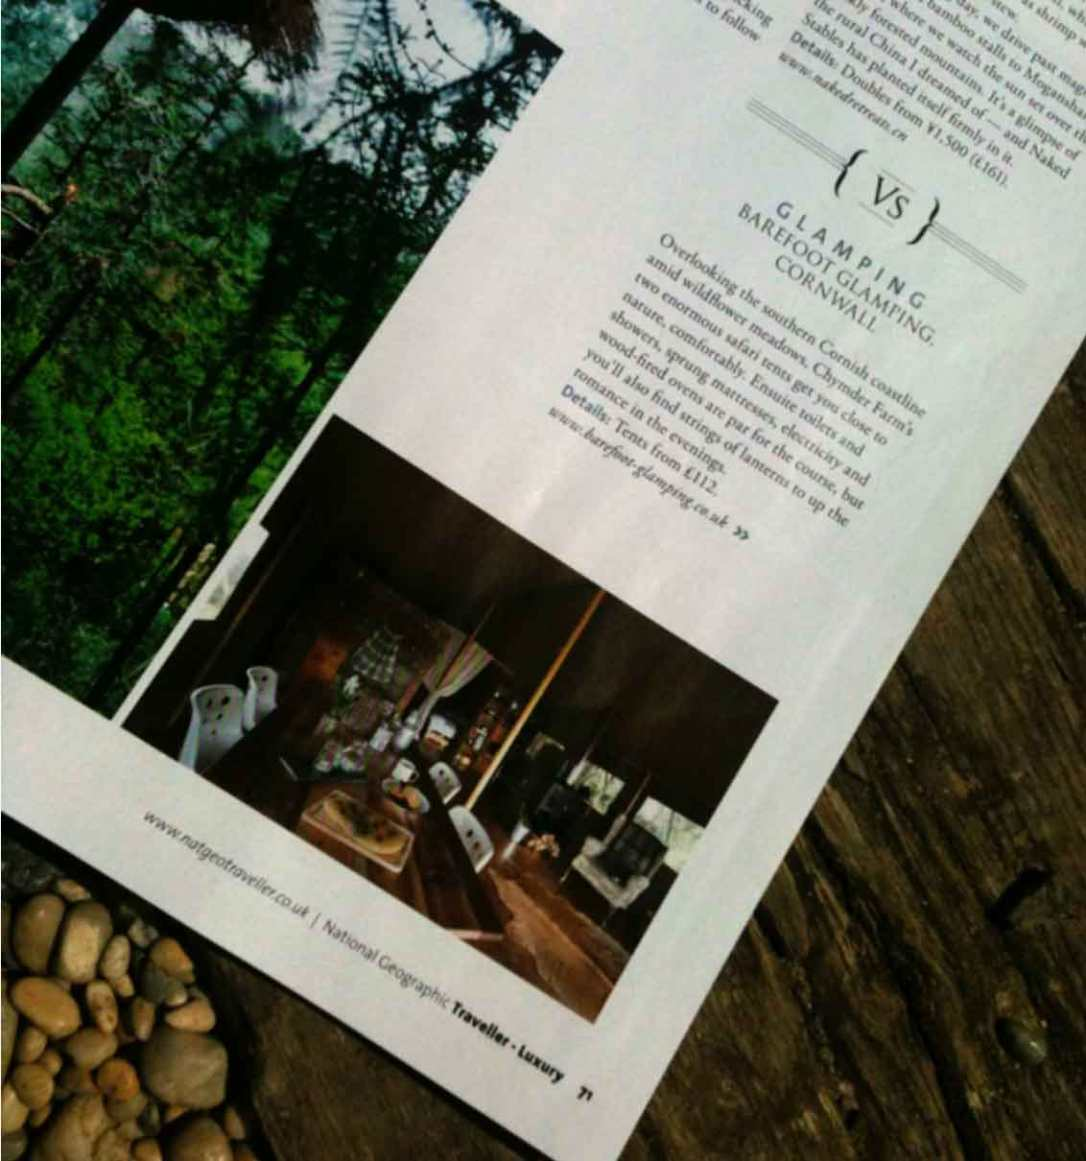 barefoot glamping cornwall in national geographic magazine